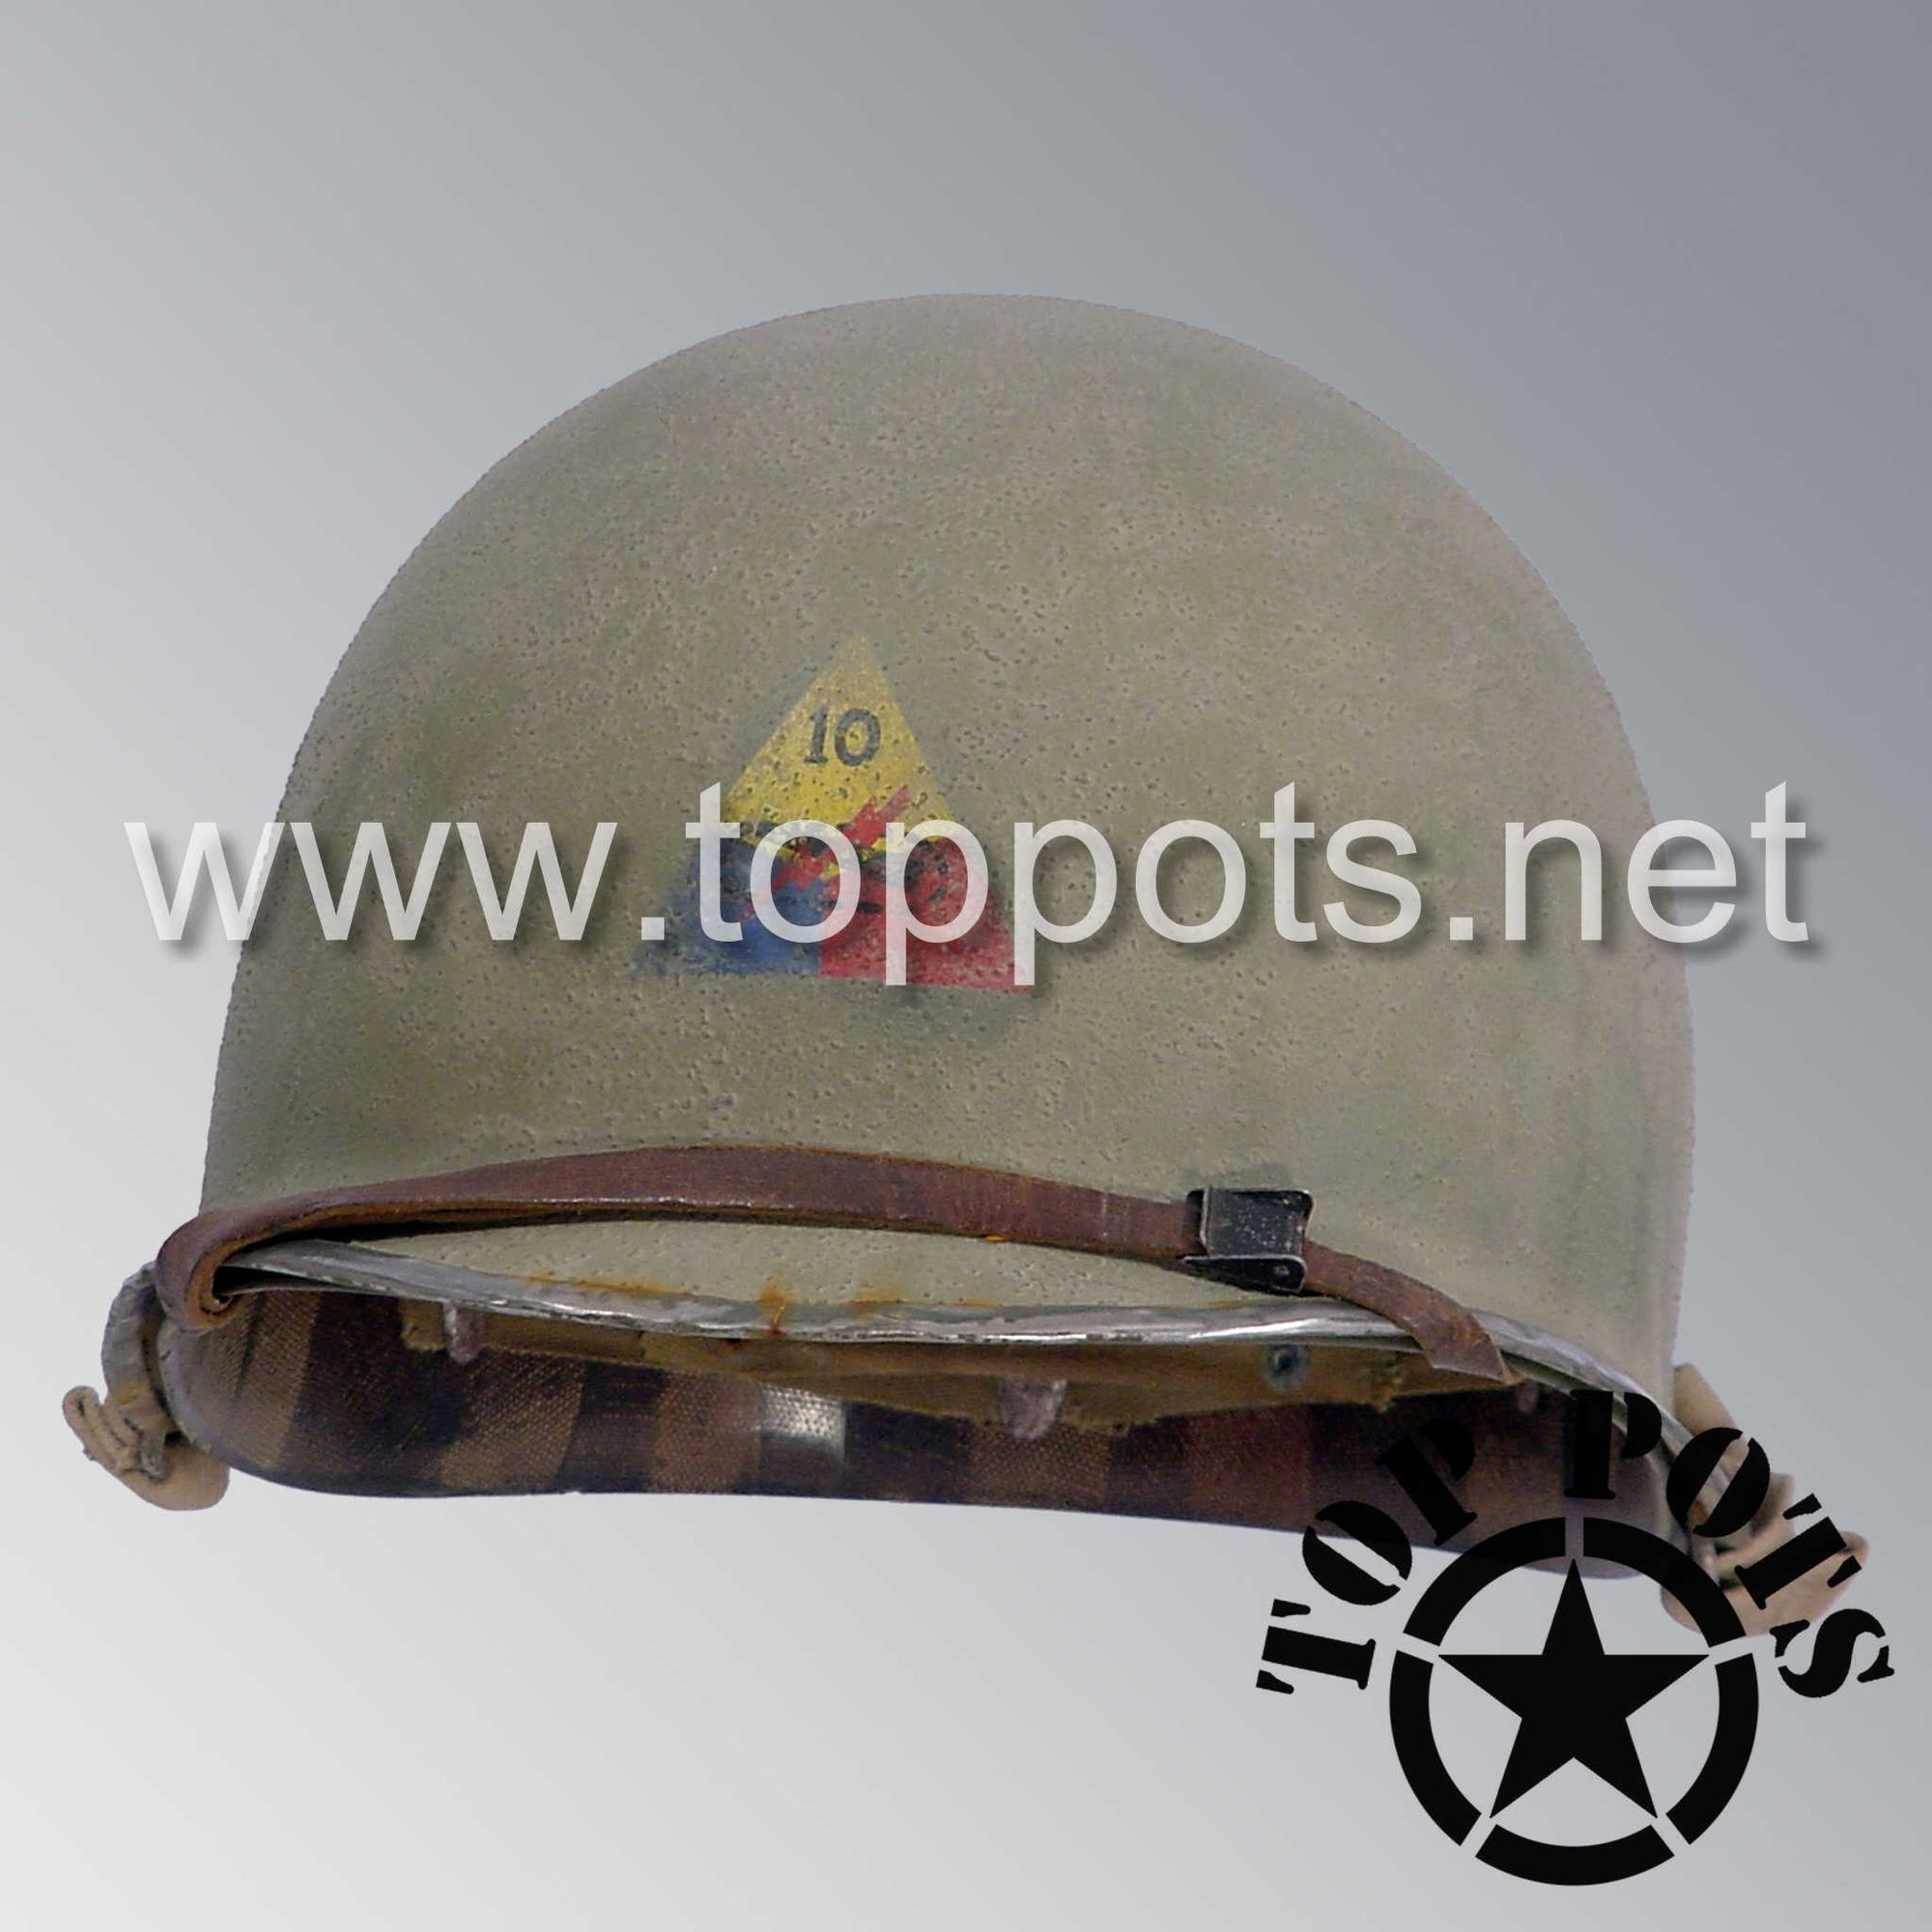 Image 1 of WWII US Army Aged Original M1 Infantry Helmet Fix Bale Shell and Liner with 10th Armored Division Emblem